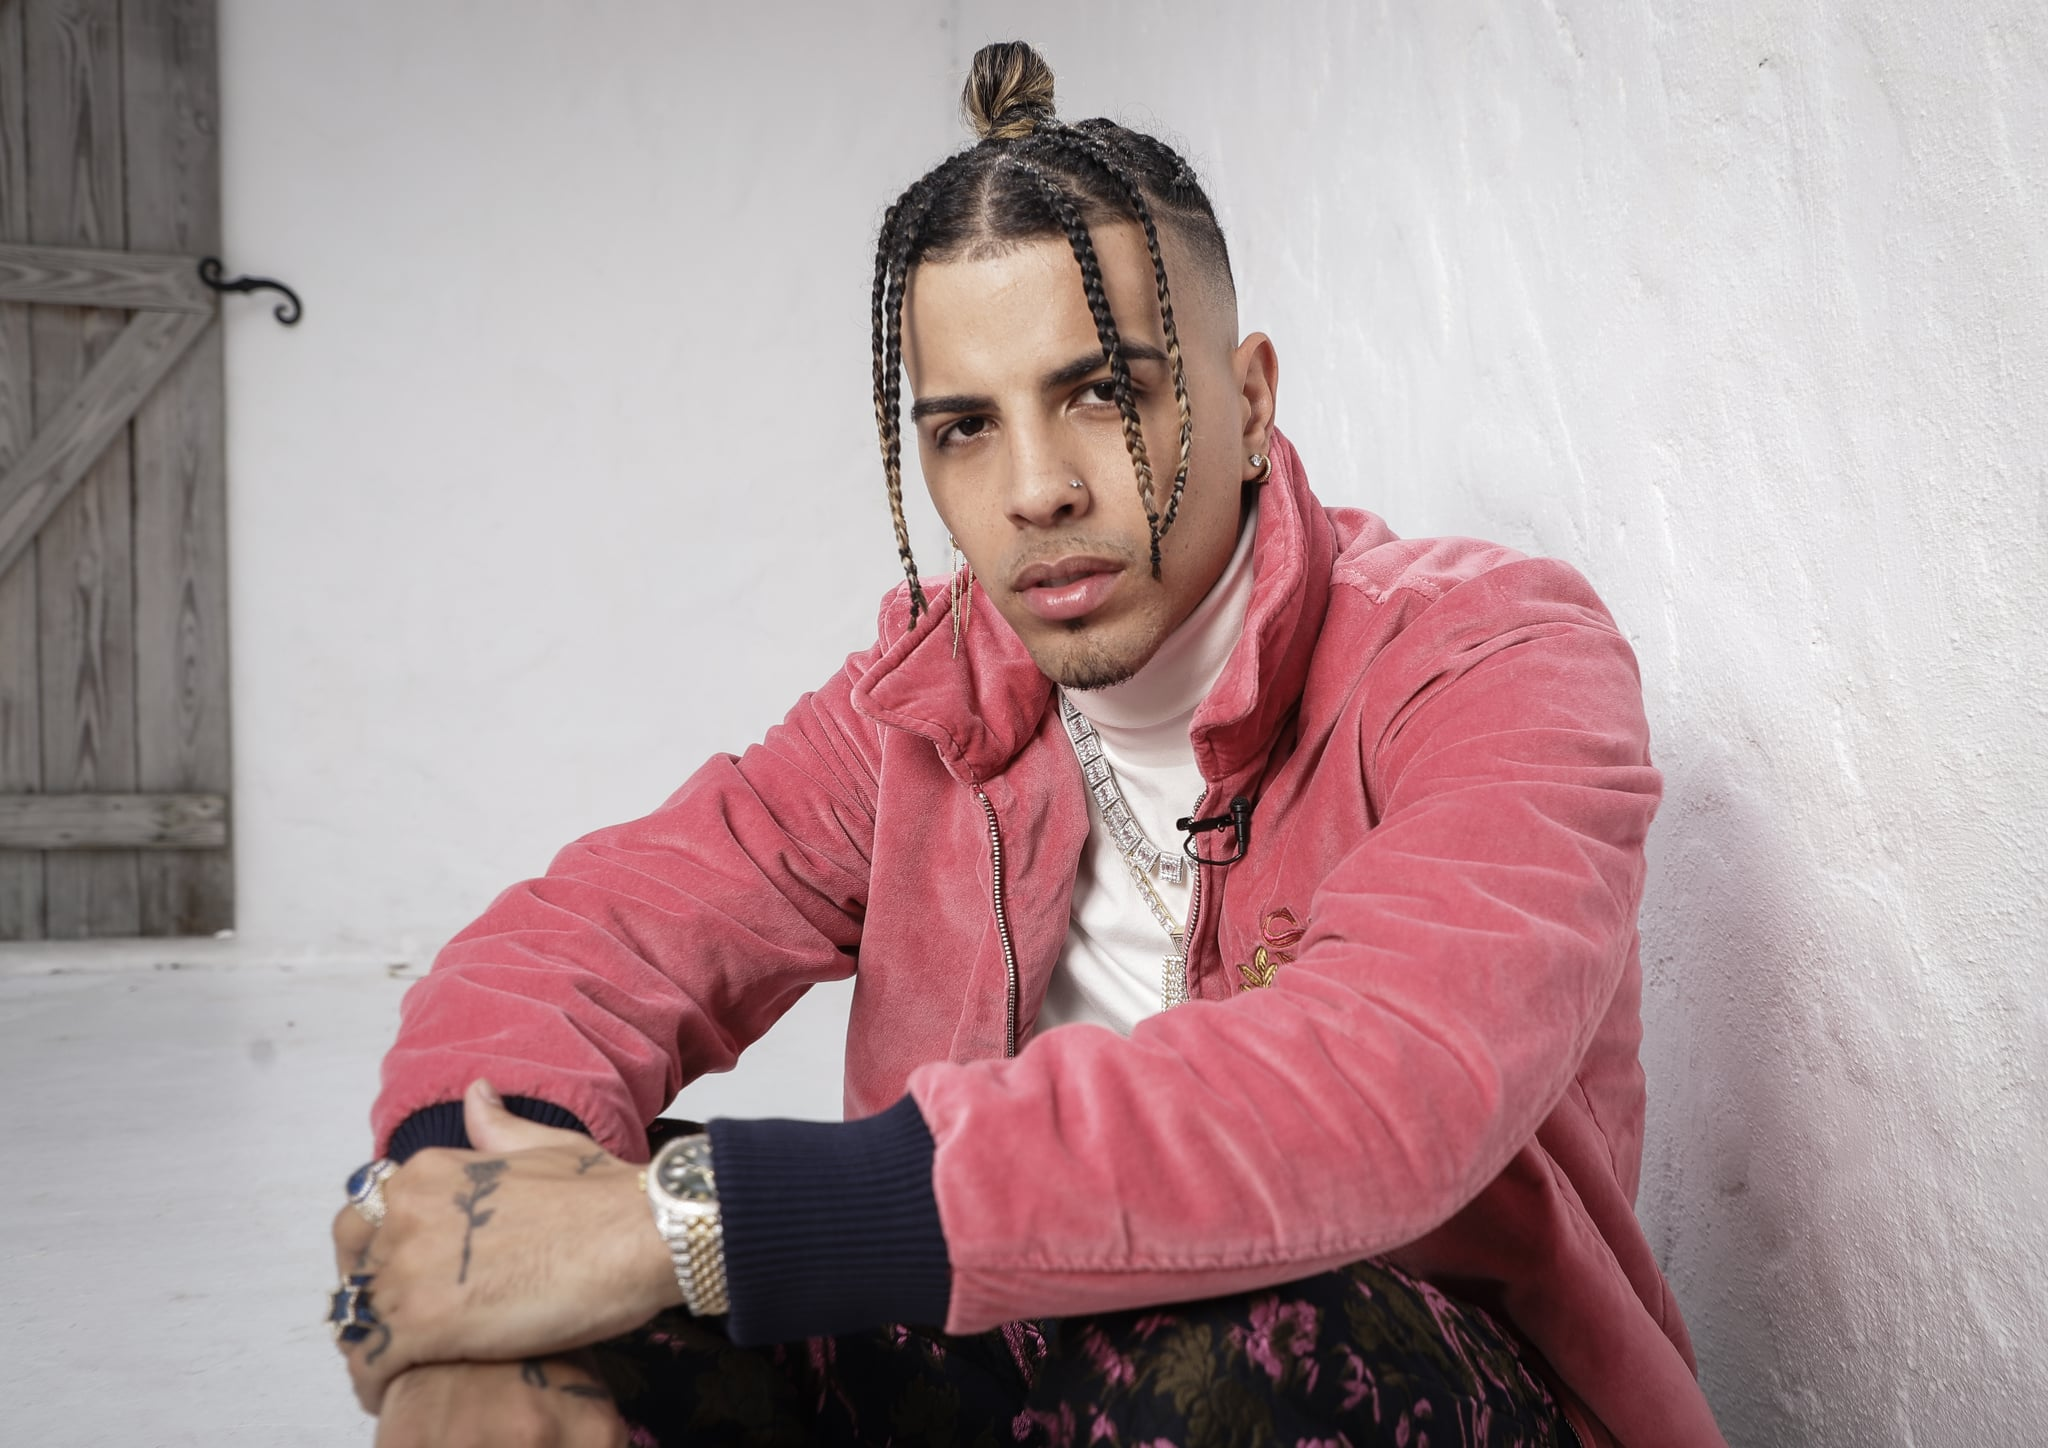 MIAMI, FLORIDA - NOVEMBER 06: Rauw Alejandro poses for a portrait during his New Single Release